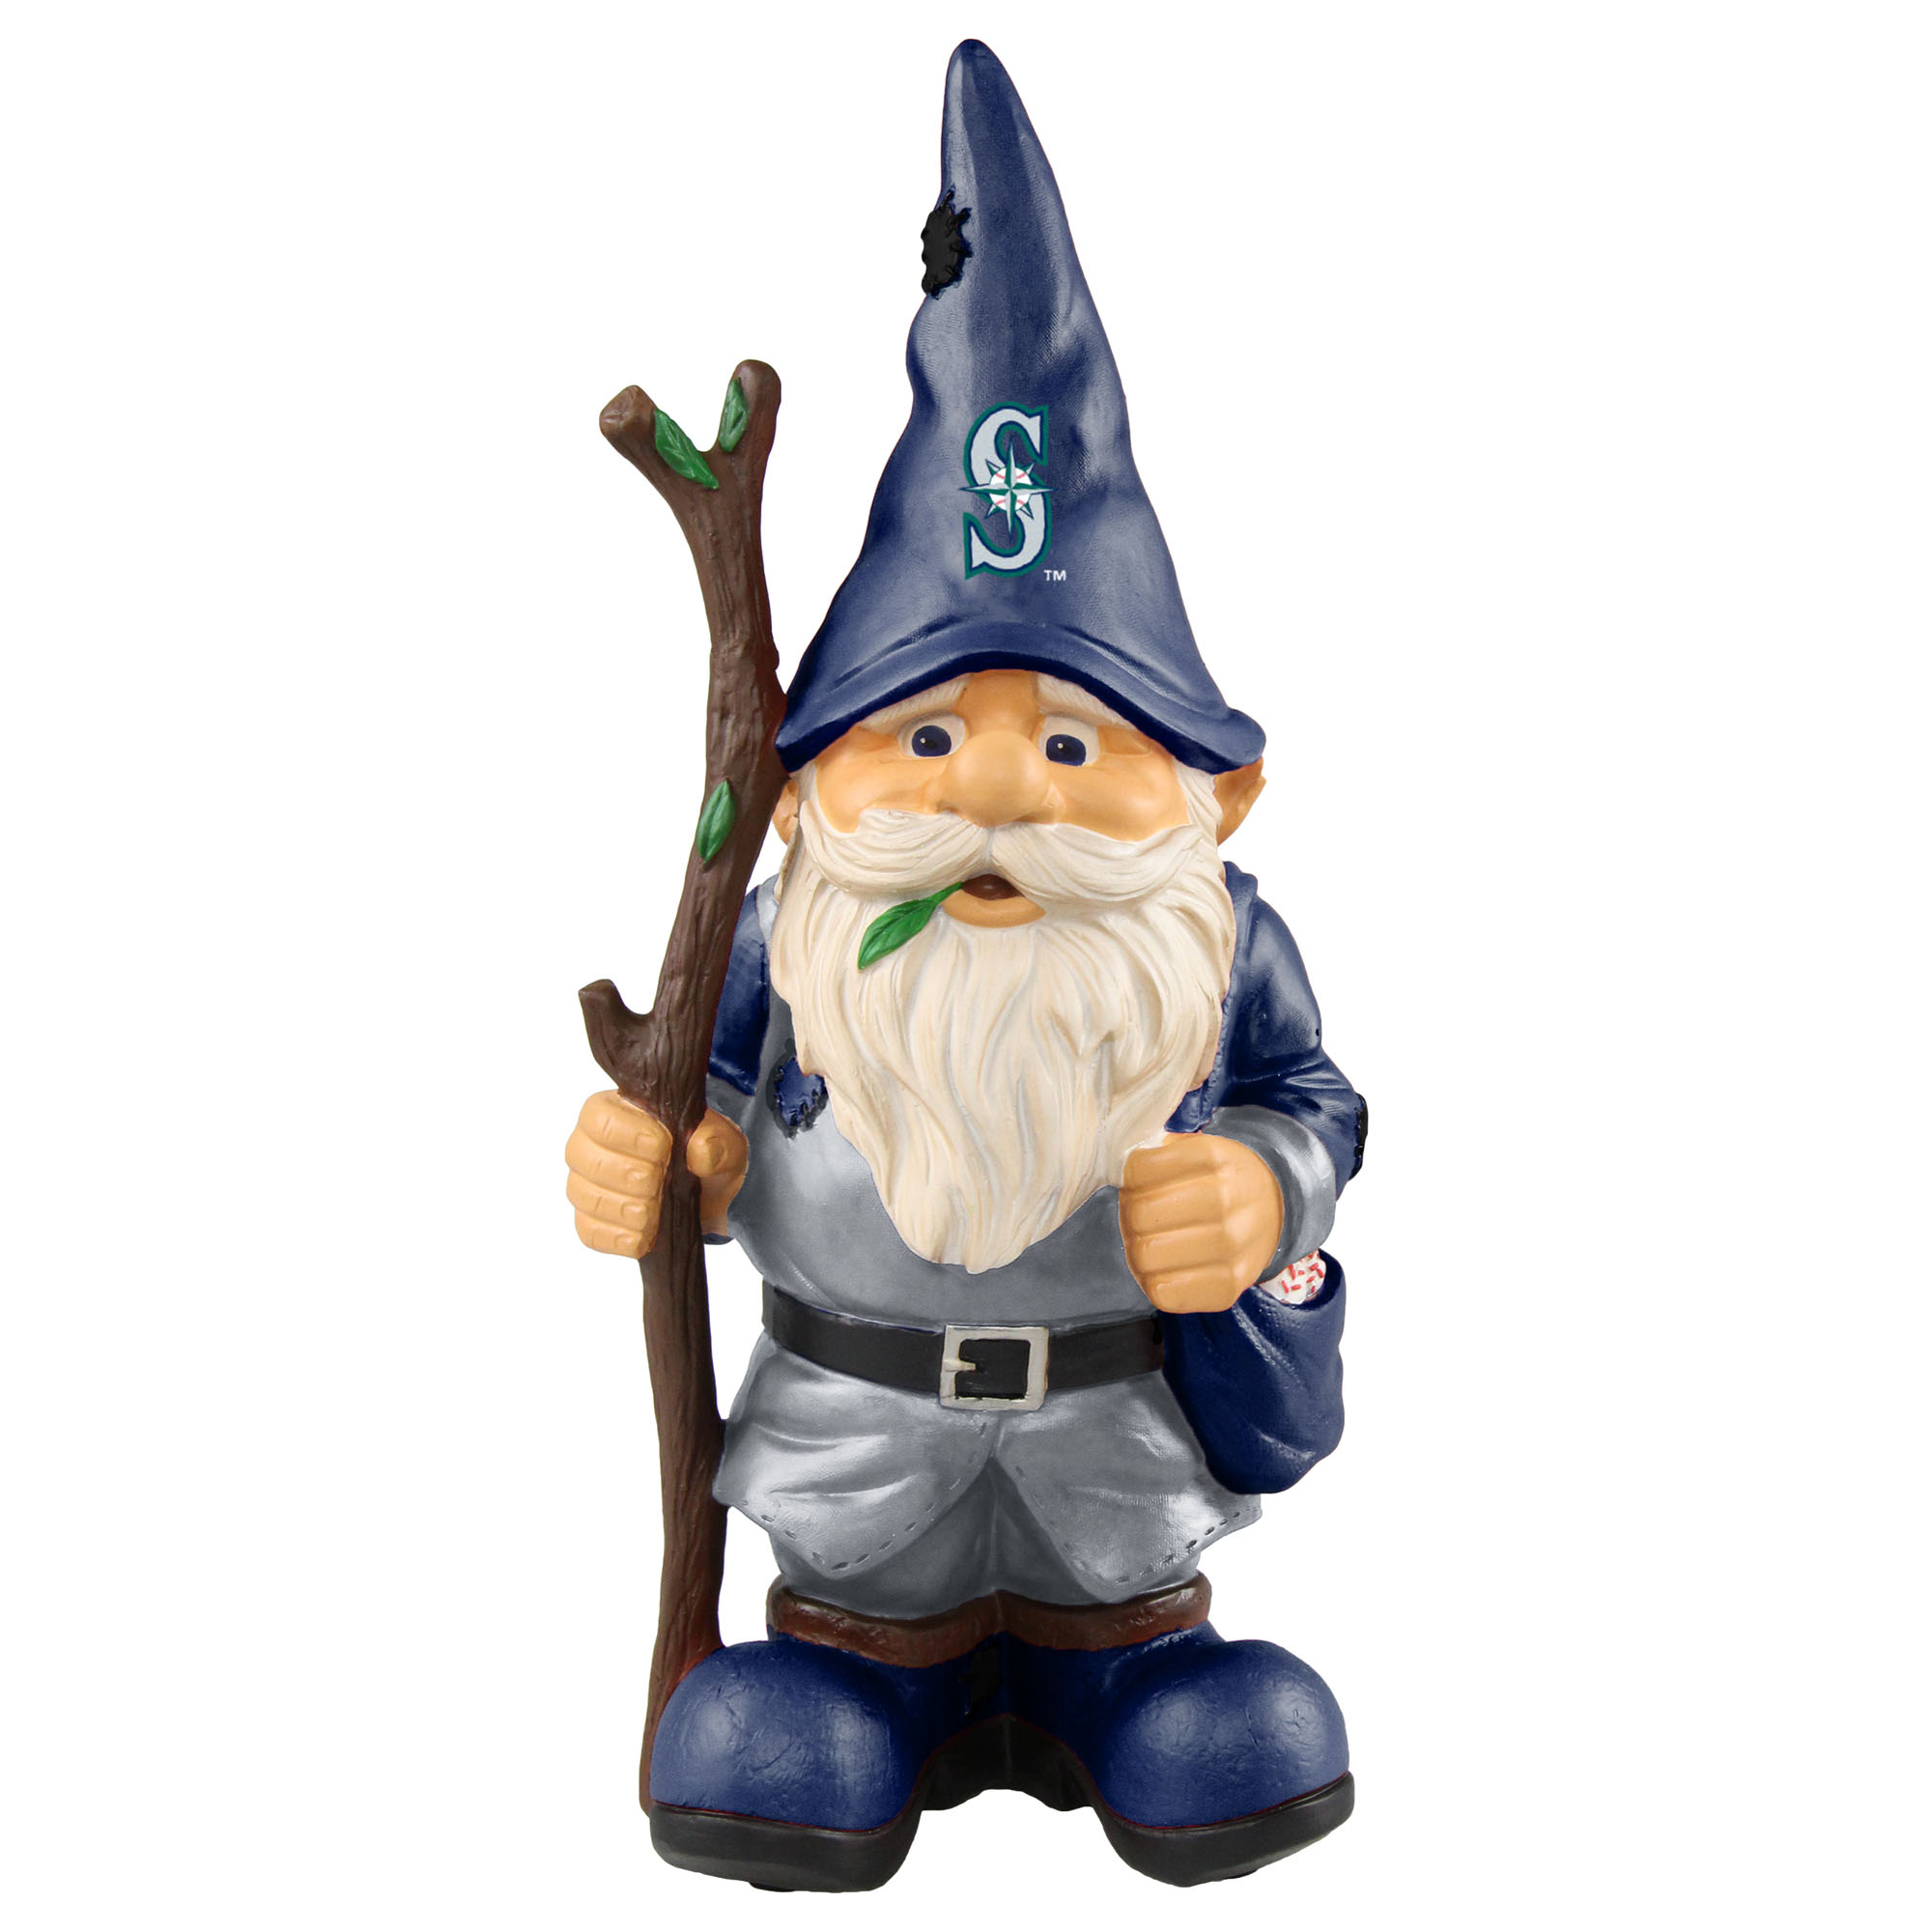 Seattle Mariners Holding Stick Gnome - No Size